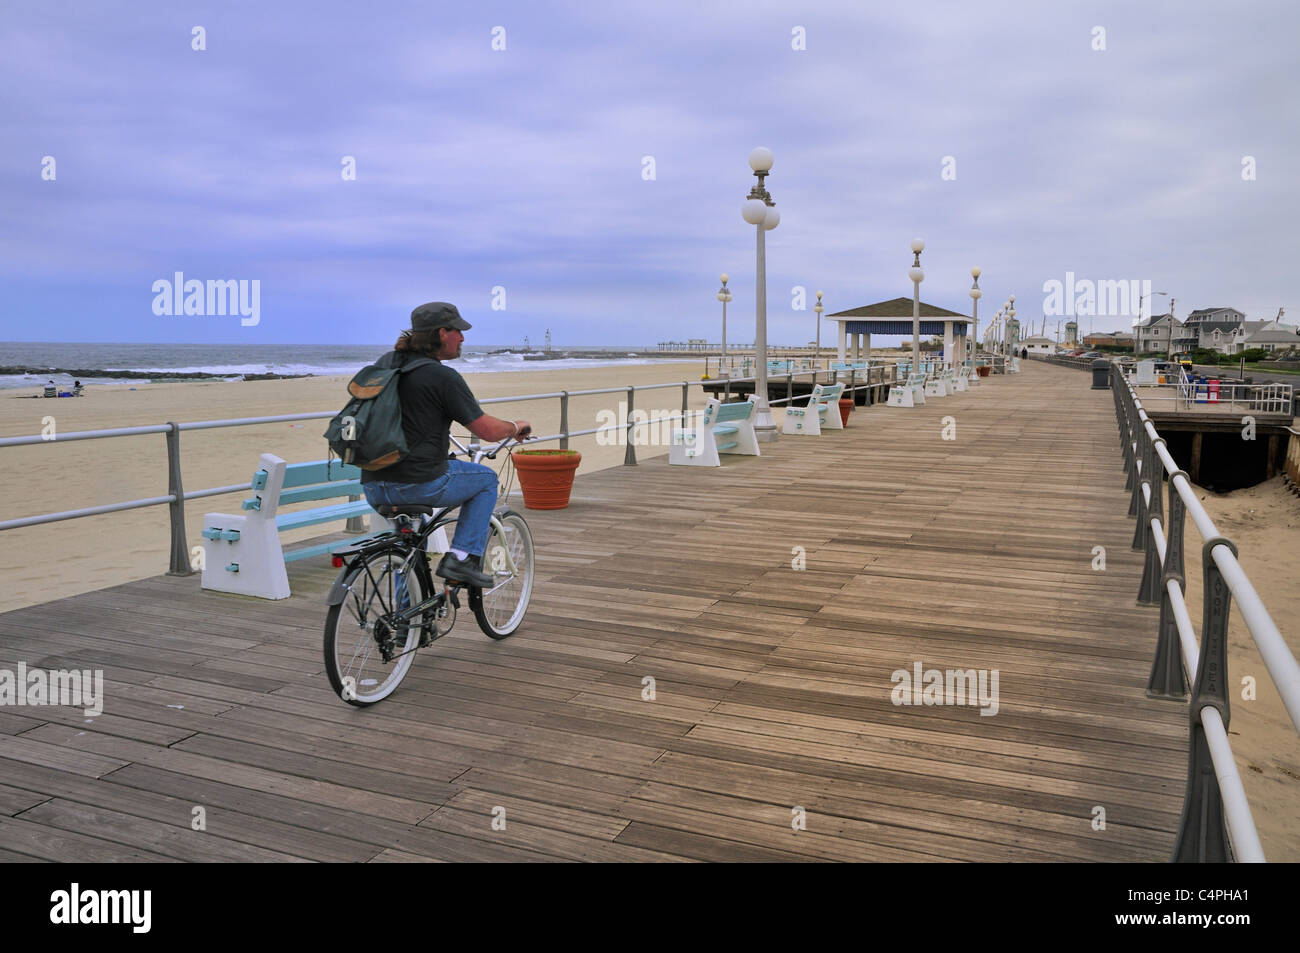 A bicyclist pedals down the boardwalk at Avon-by-the-Sea, New Jersey in spring - Stock Image